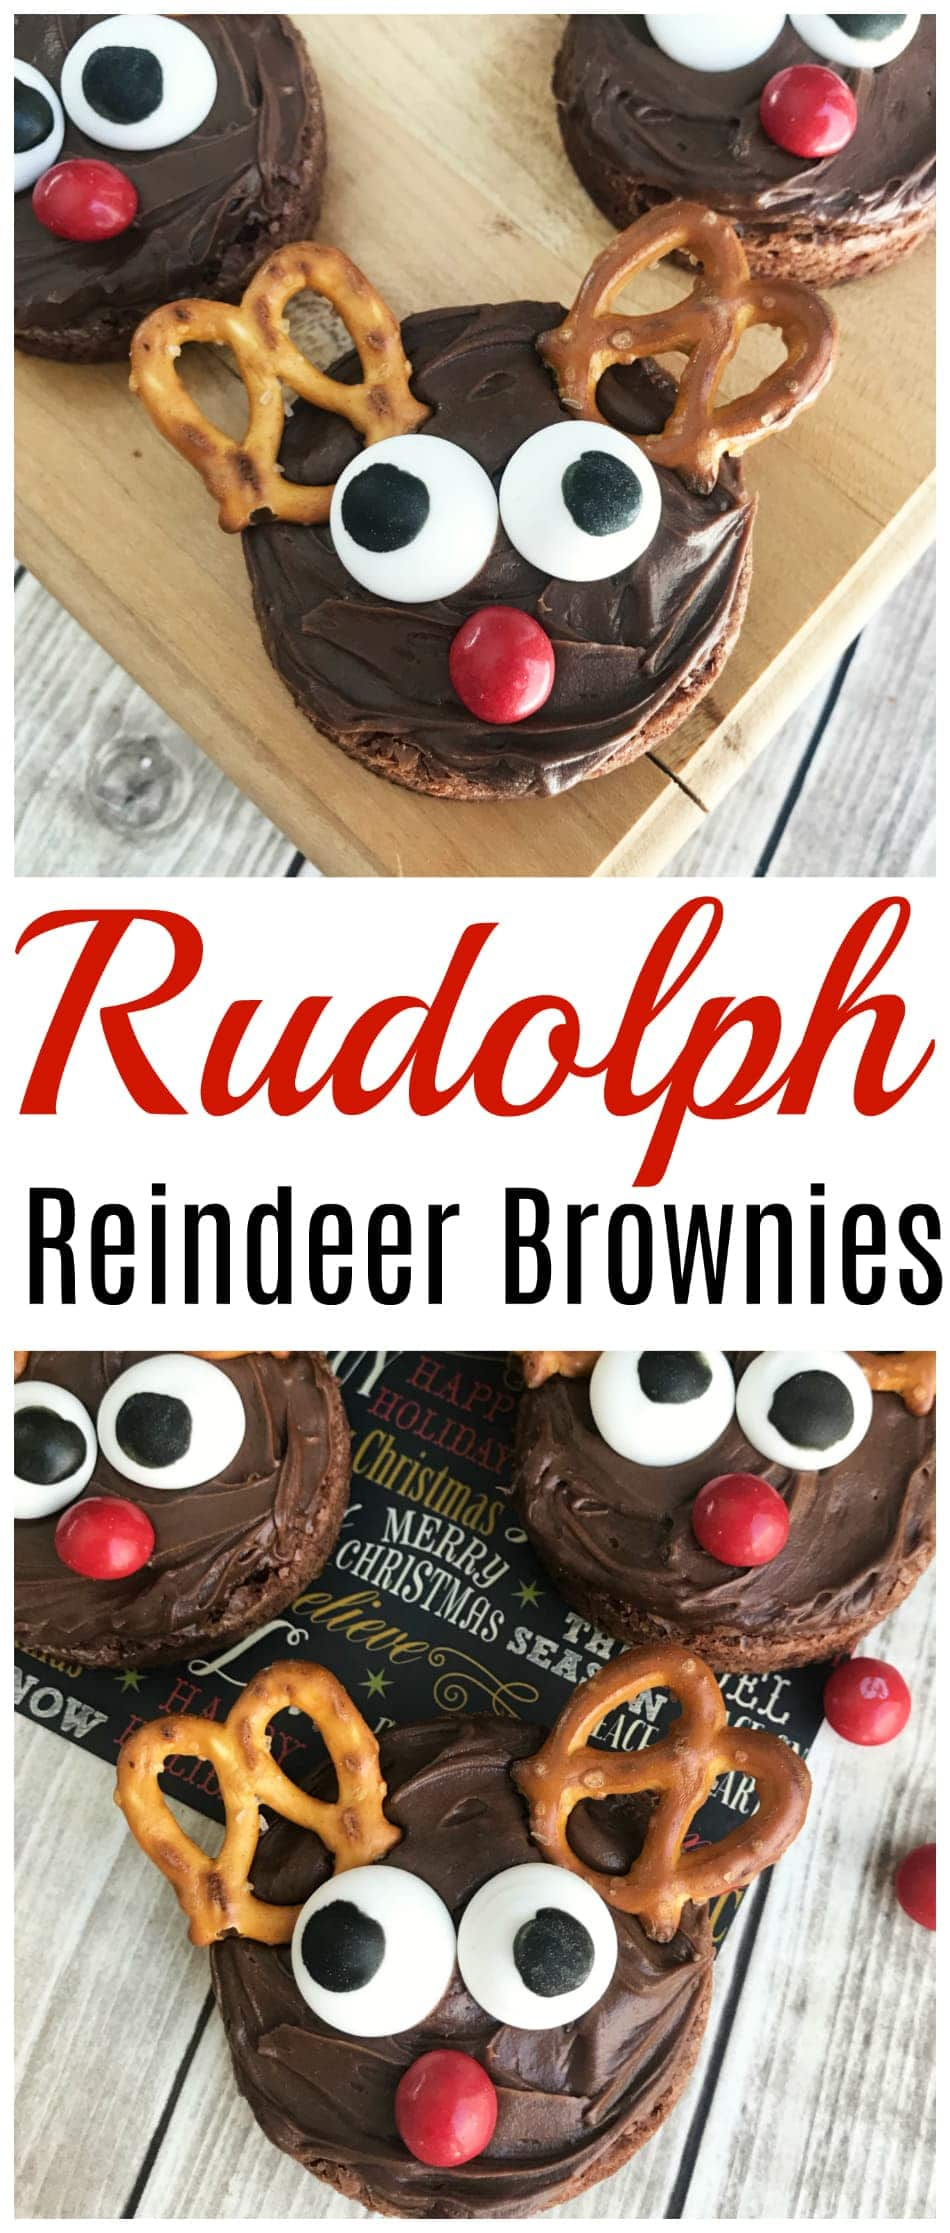 These easy Rudolph the Red Nose Reindeer Brownies our a perfect Christmas holiday party dessert that everyone will go crazy for. #ChristmasBrownies #ReindeerBrownies https://www.southernfamilyfun.com/easy-rudolph-reindeer-brownies/